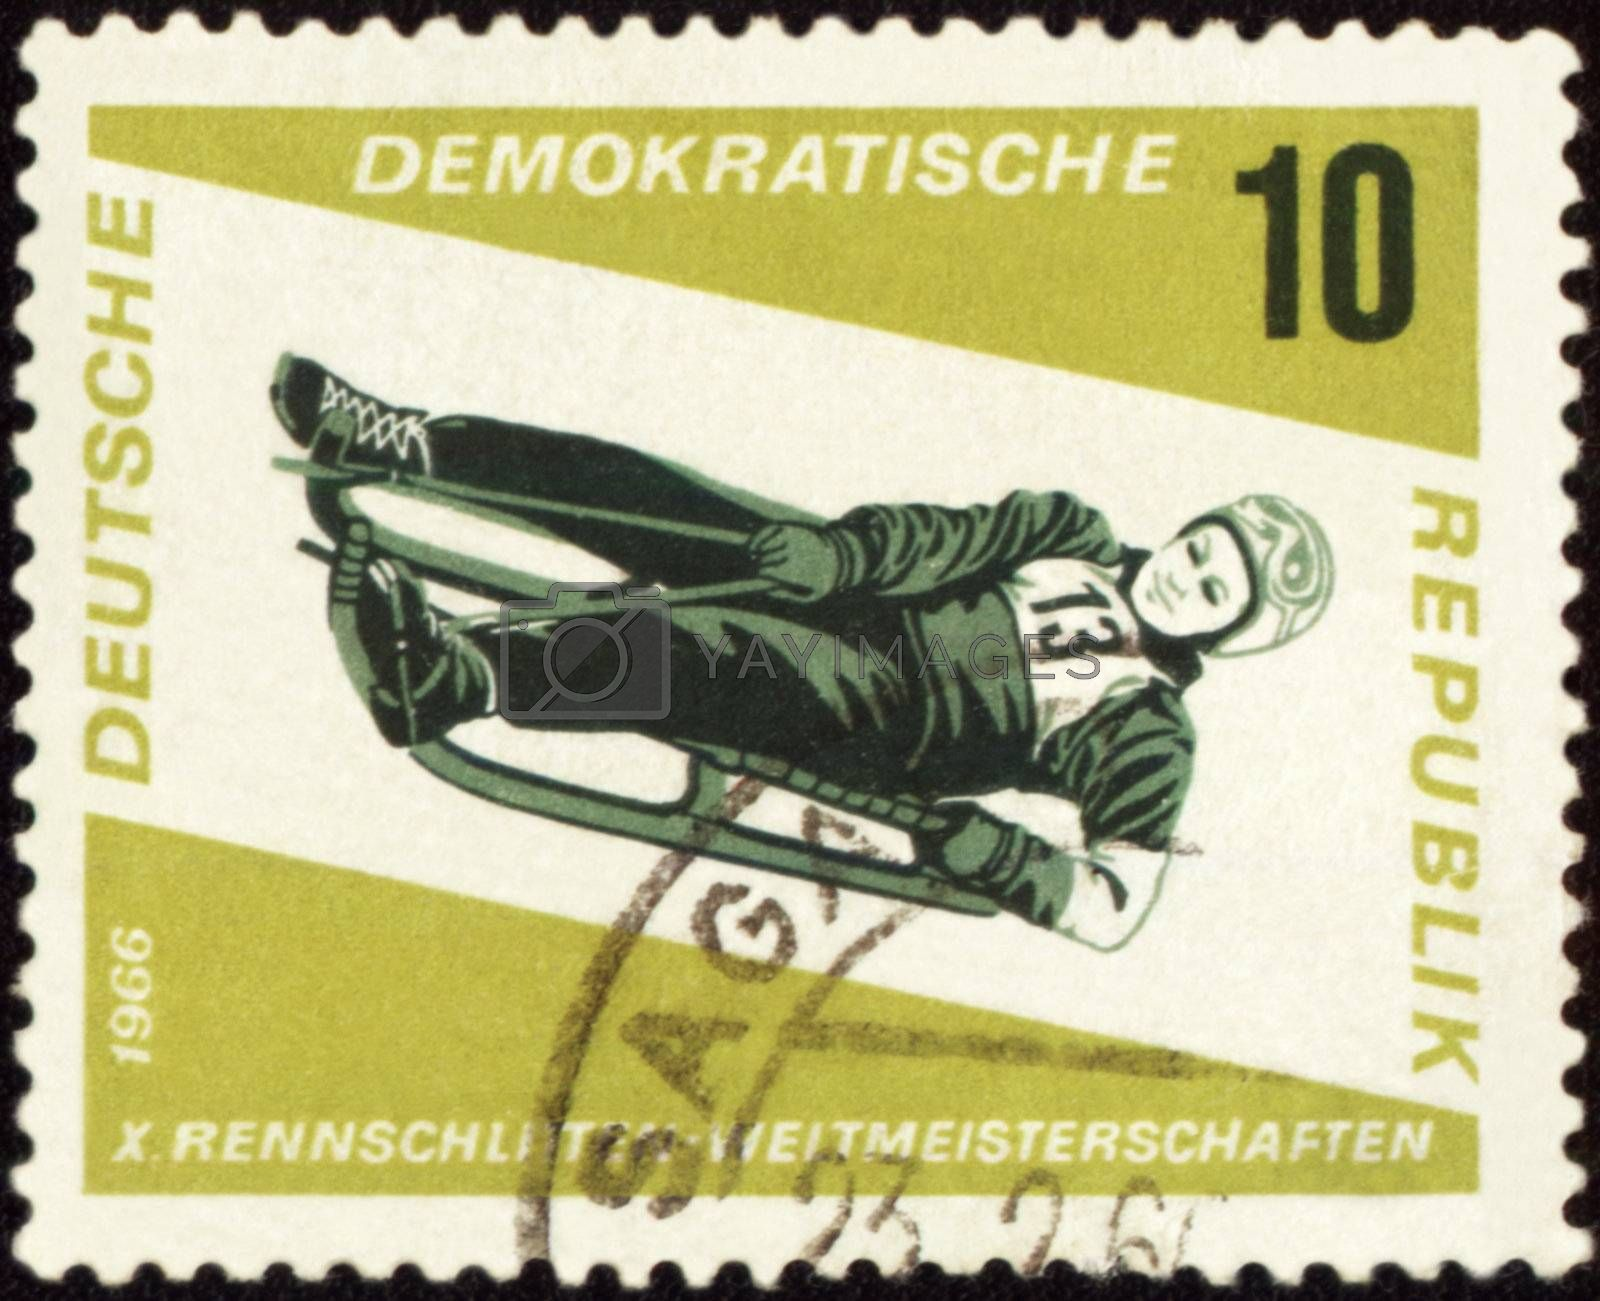 GDR - CIRCA 1966: A stamp printed in GDR (East Germany) shows descent to sledge, circa 1966